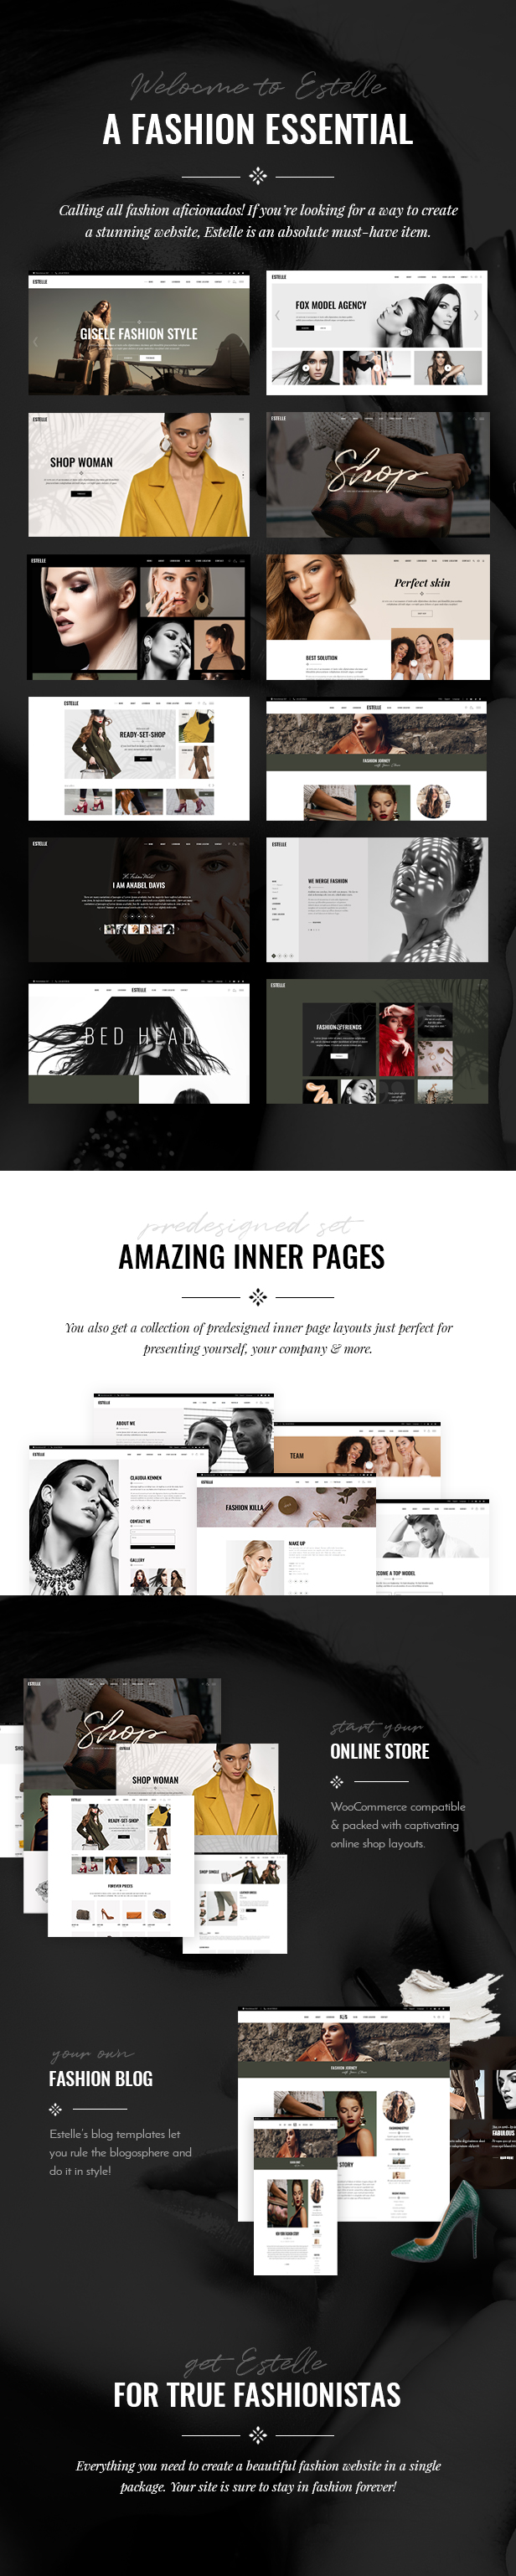 Estelle - Fashion and Modelling Agency Theme - 1